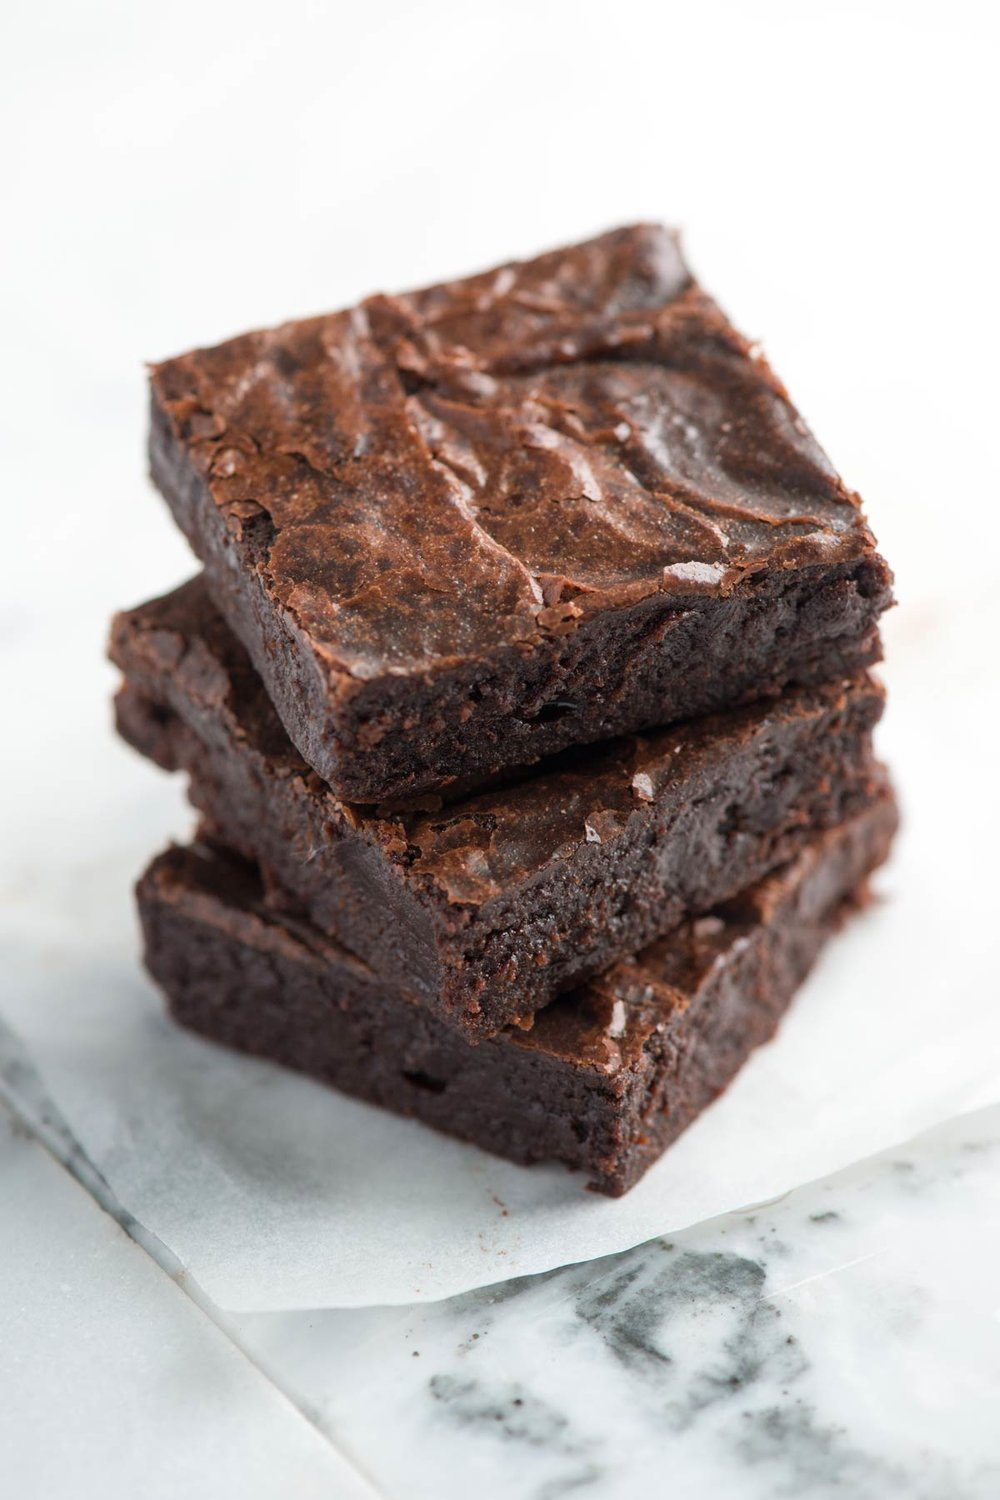 Delightful Desserts! - Here's a sneaky way to get super healthy veggies into a yummy treat! You would hardly suspect it's packed with antioxidants, vitamin A & C and fiber! Dessert never felt so good!